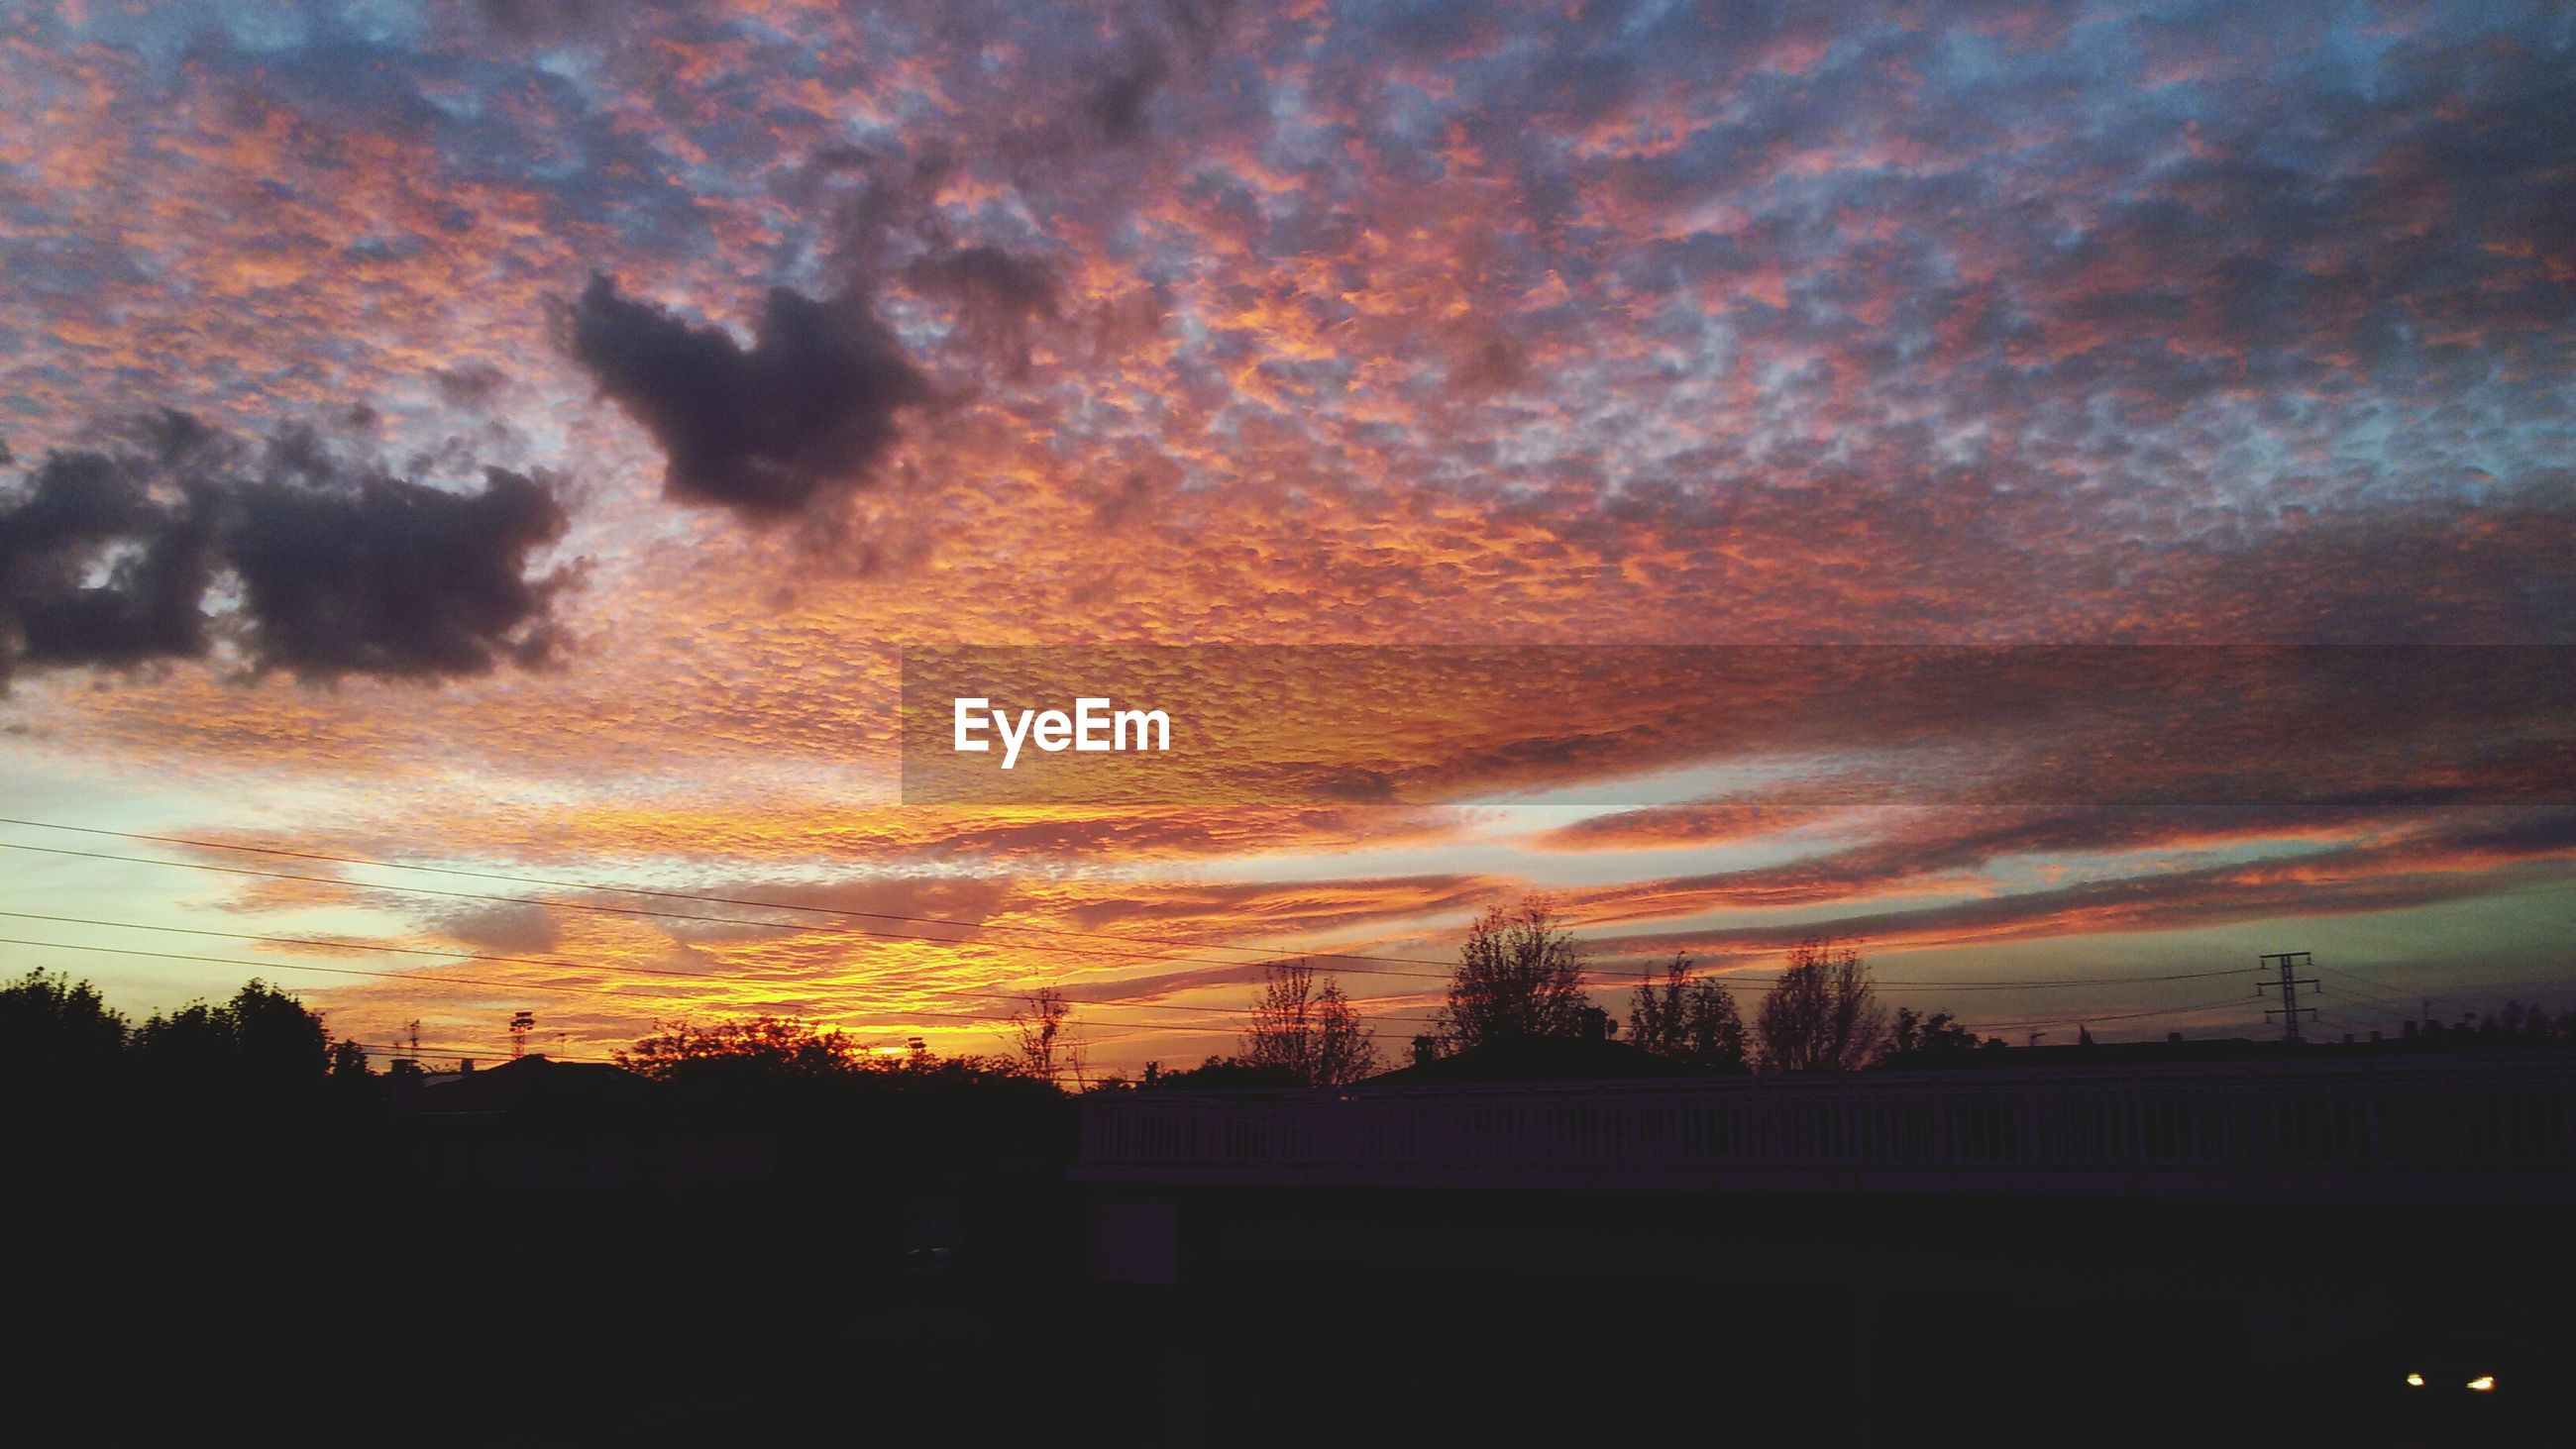 sunset, silhouette, sky, orange color, beauty in nature, tree, scenics, cloud - sky, nature, built structure, tranquility, tranquil scene, low angle view, architecture, building exterior, dark, dramatic sky, idyllic, outdoors, dusk